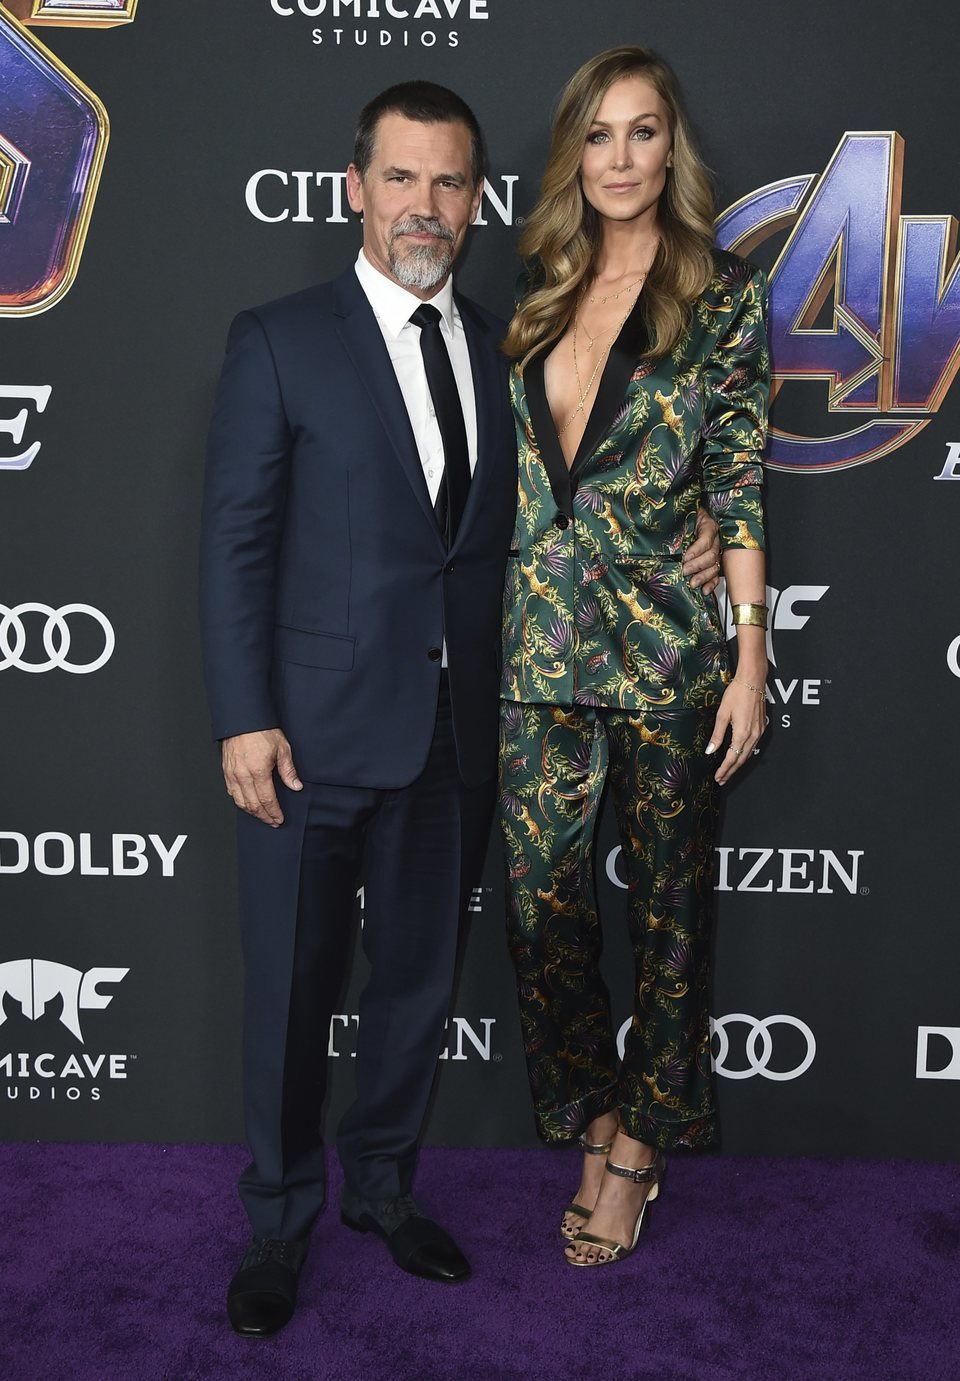 Josh Brolin and Karthyn Boyd on the red carpet of 'Avengers: Endgame'